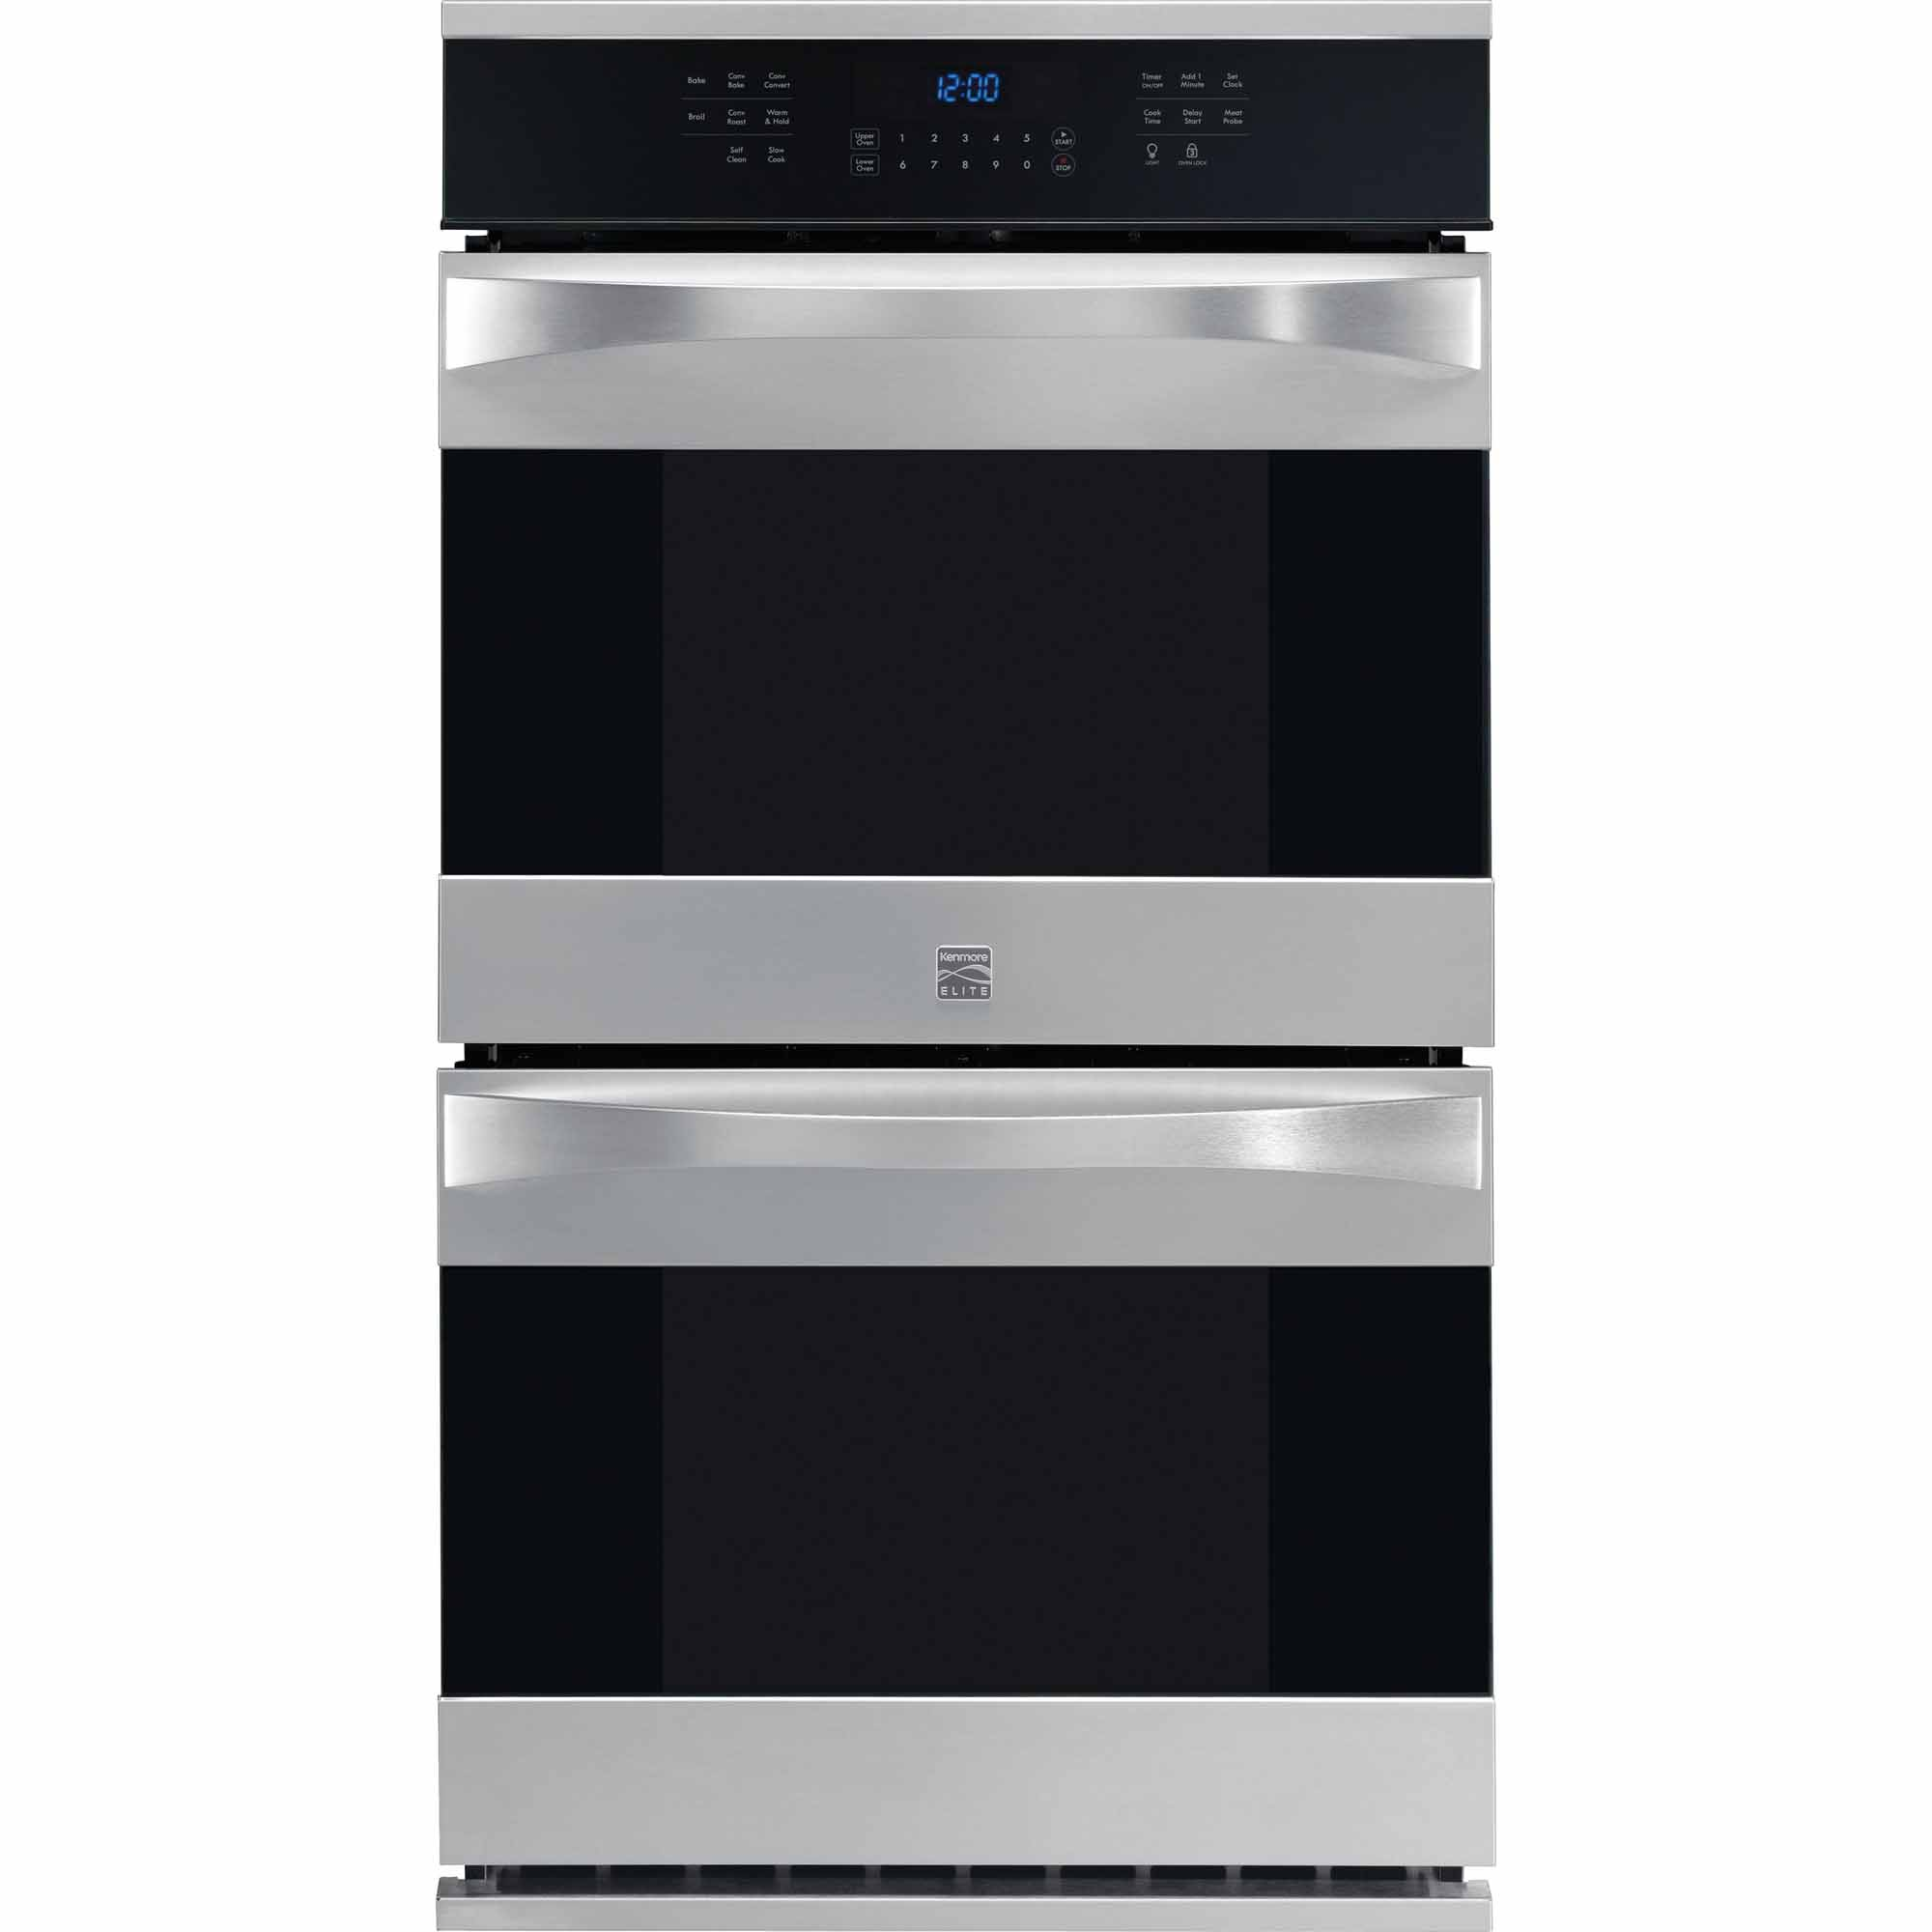 Kenmore Elite 48443 27 Electric Double Wall Oven w/ True Convection™  - Stainless Steel